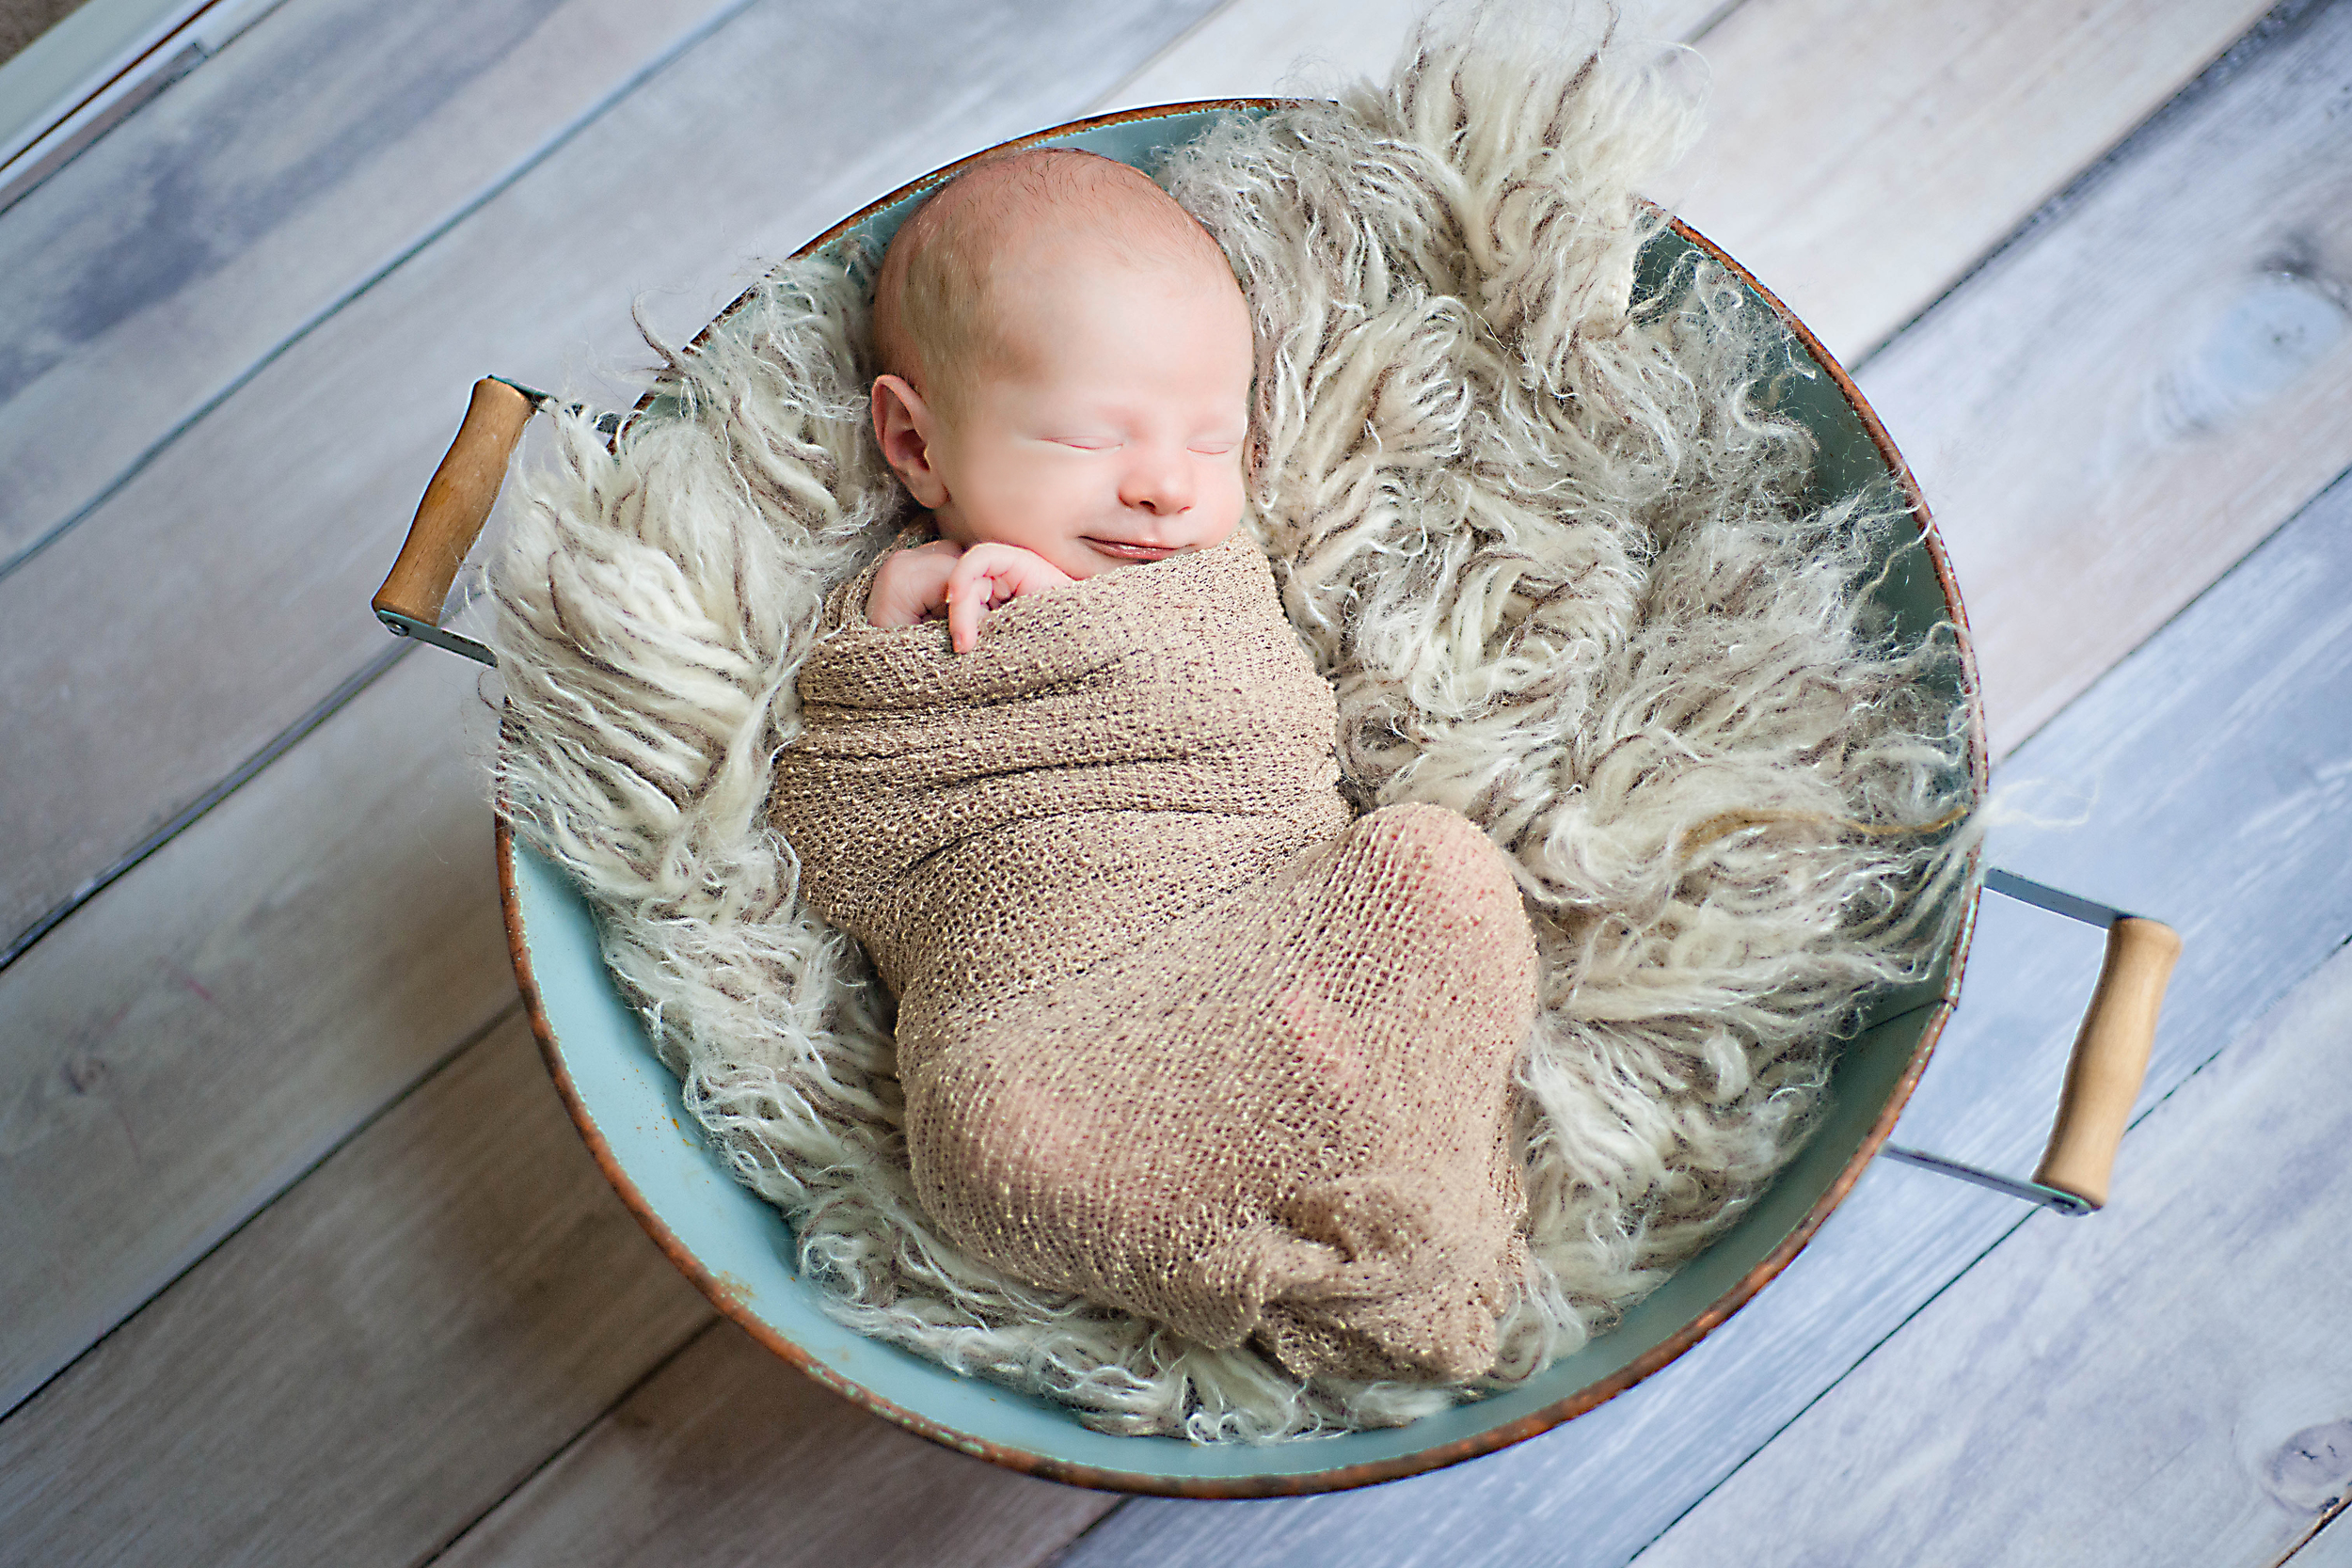 Iceland Newborn Photographer Photos by Miss Ann -1.jpg